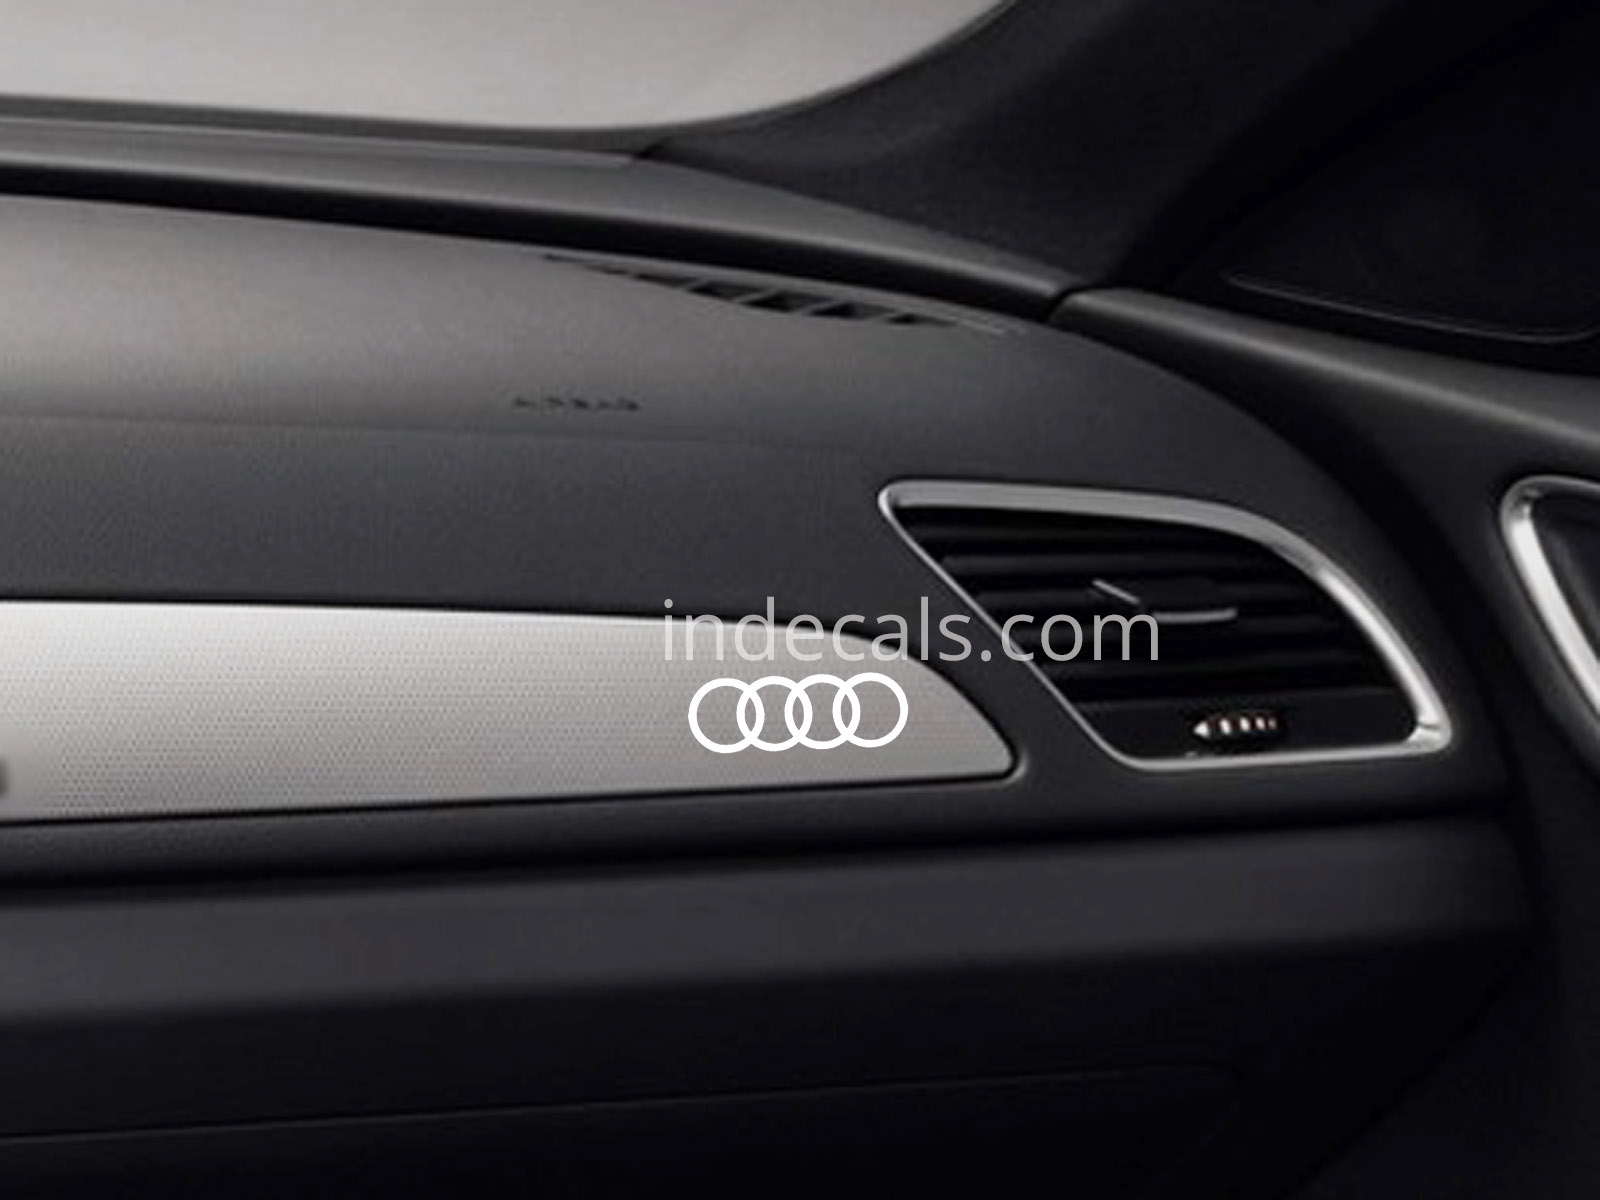 3 x Audi Rings Stickers for Dash Trim - White